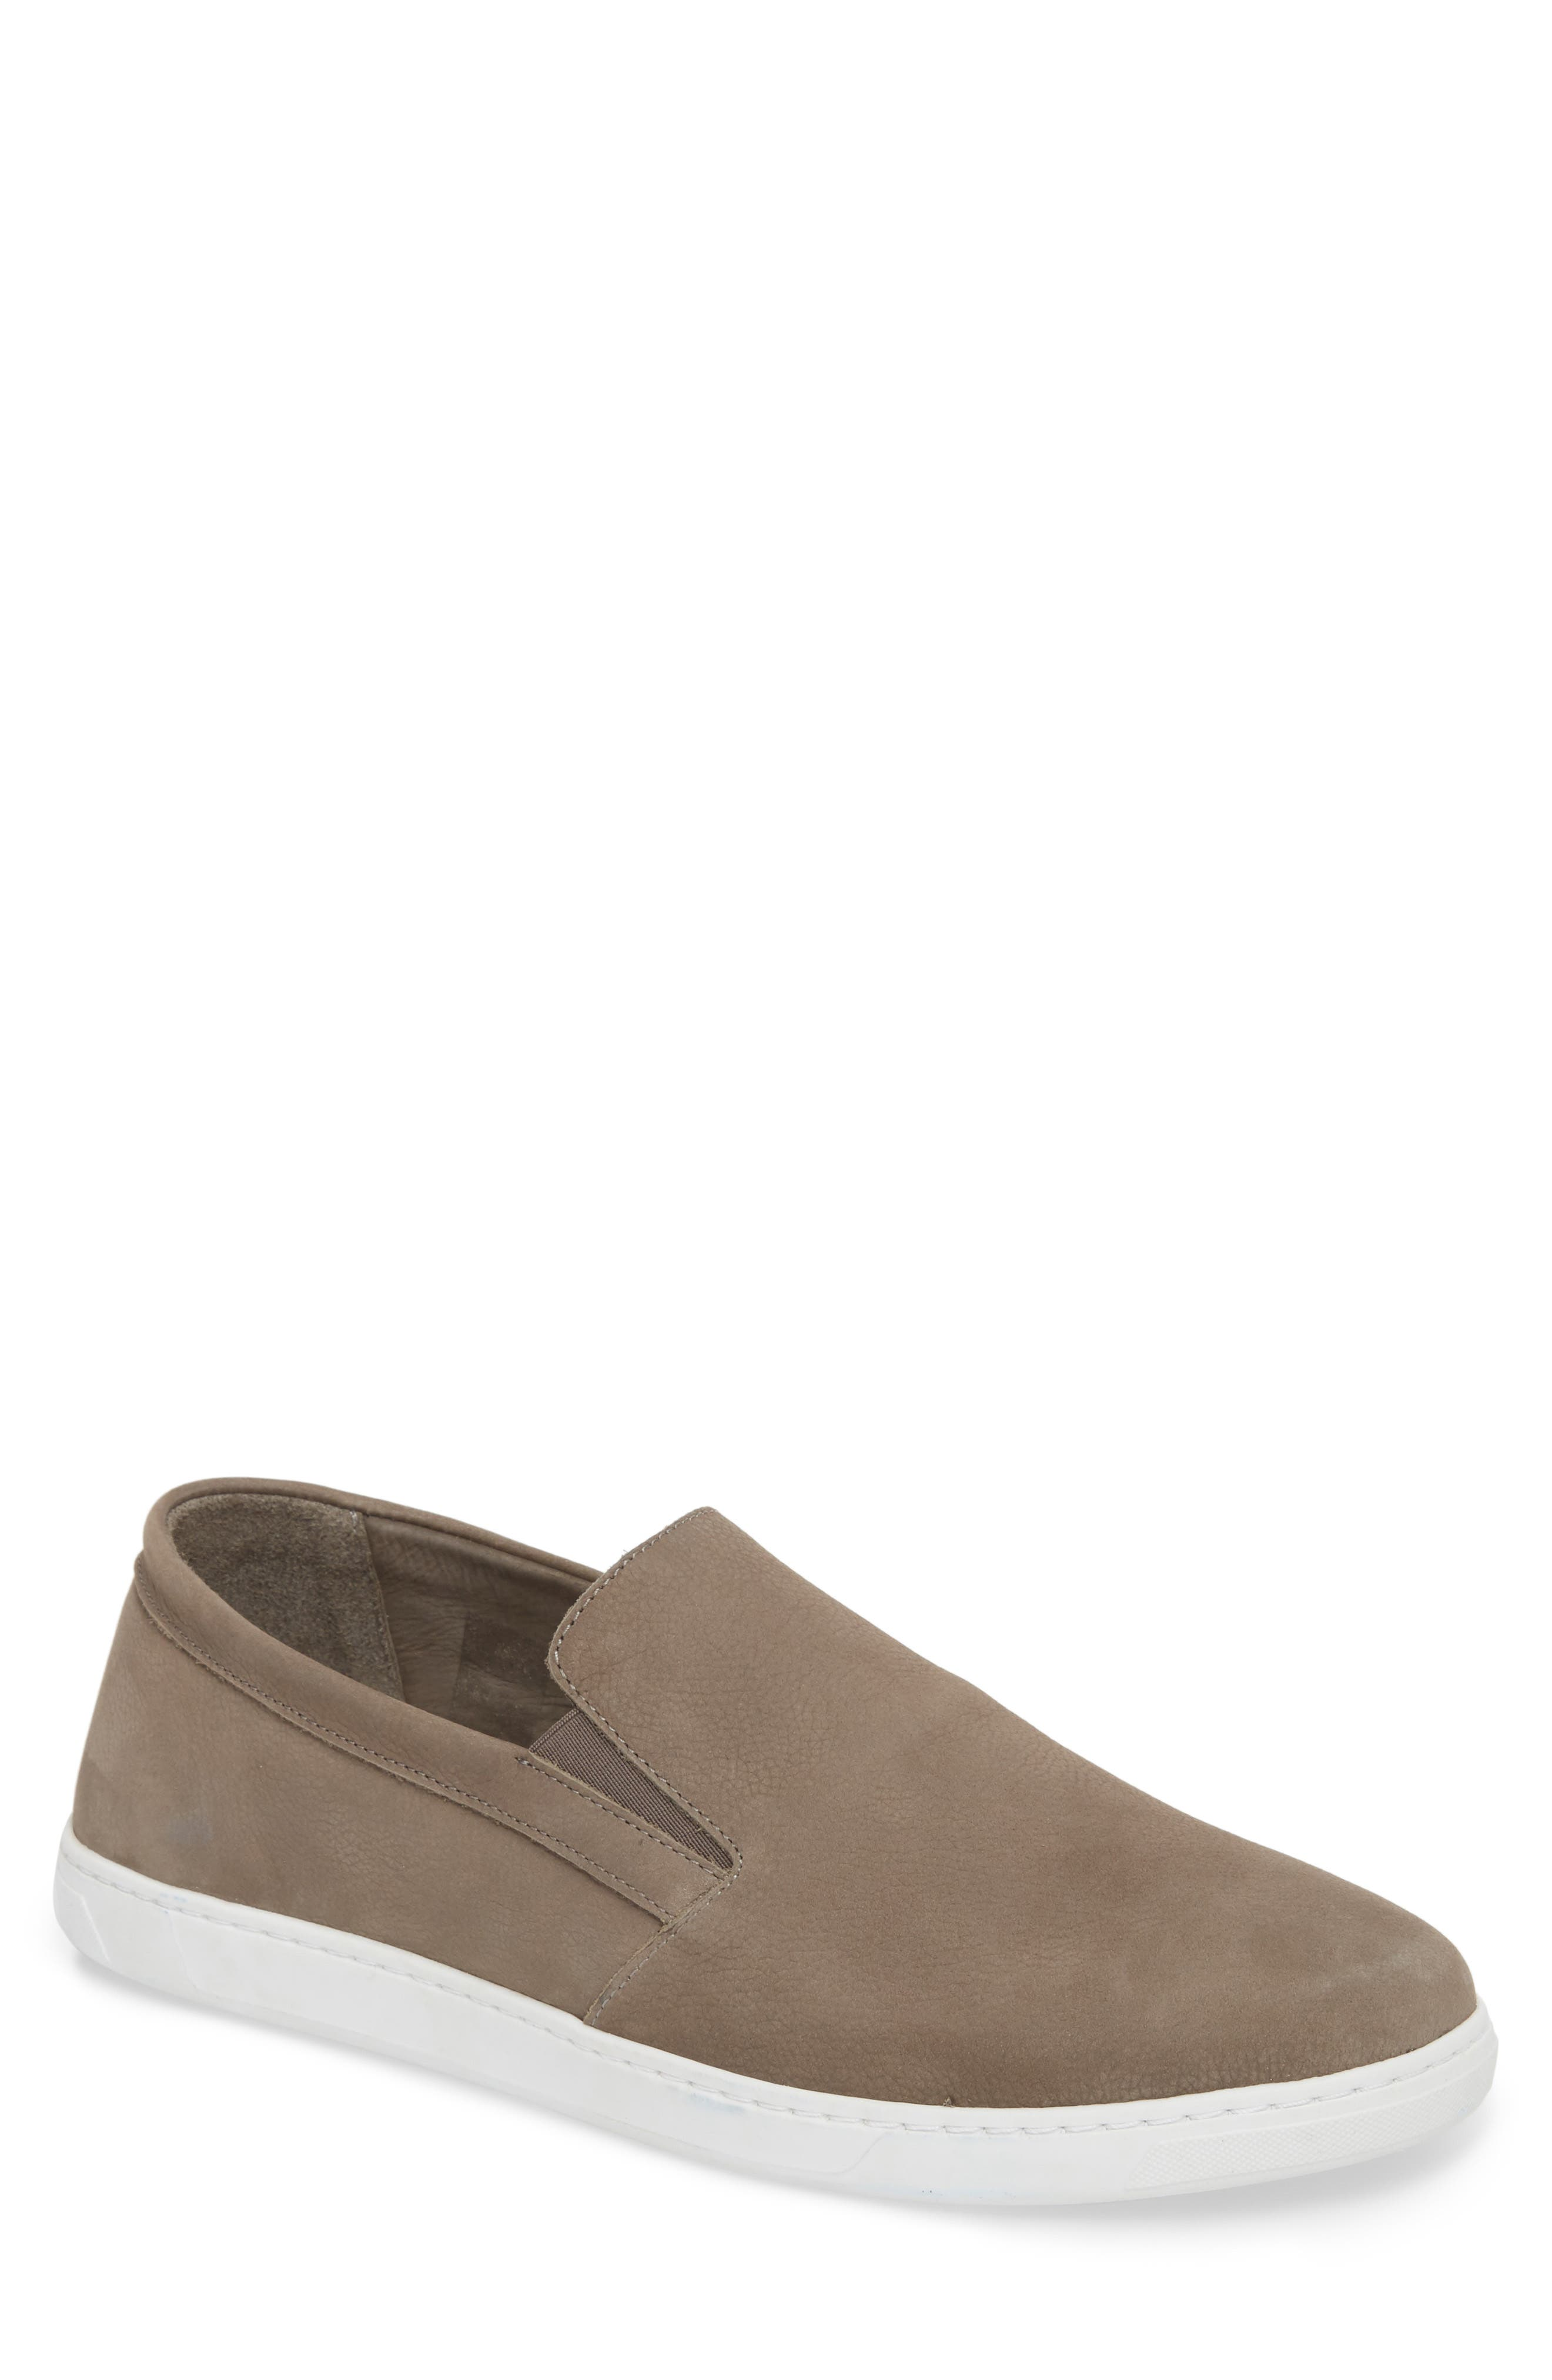 VINCE CAMUTO, Neff Slip-On Sneaker, Main thumbnail 1, color, DARK GREY LEATHER